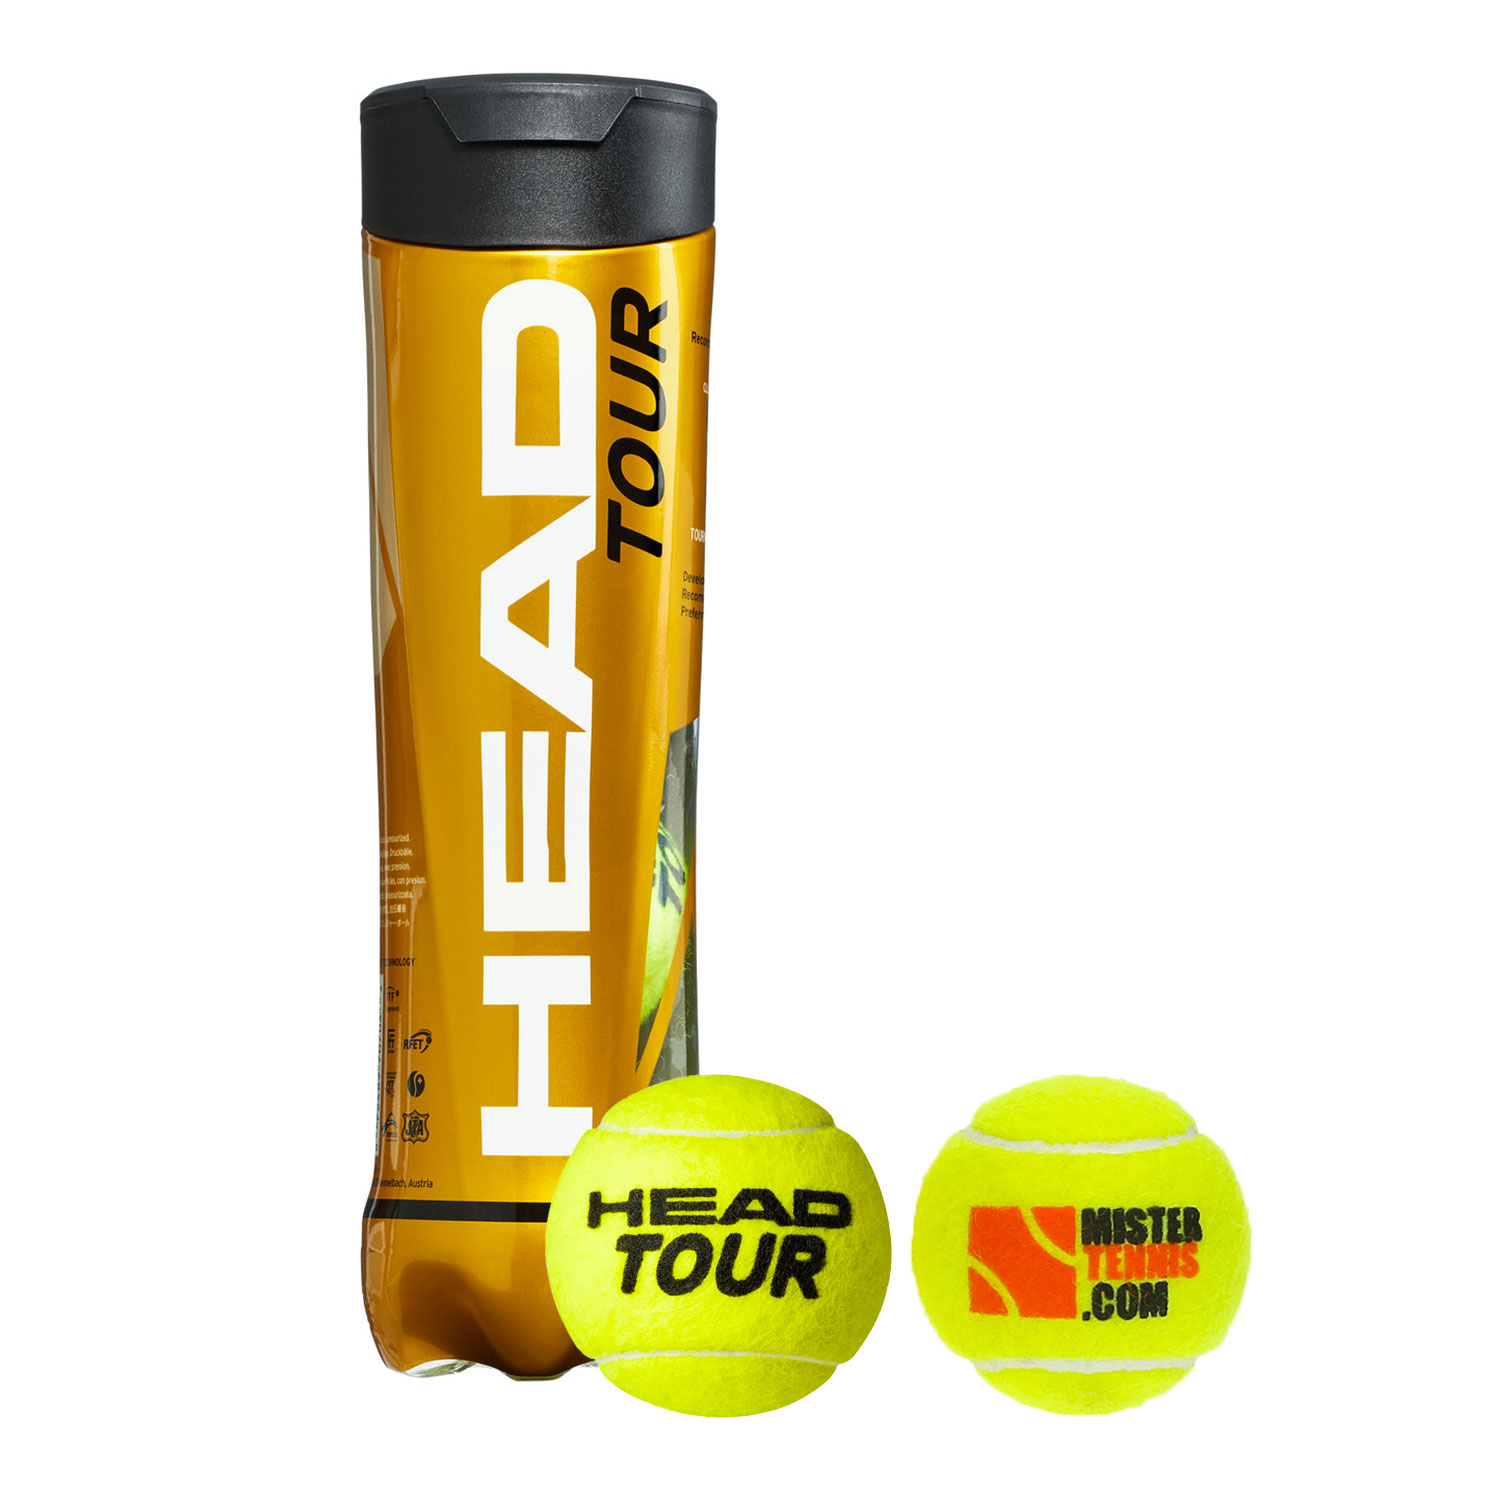 Head Tour Mister Tennis Logo - 4 Ball Can